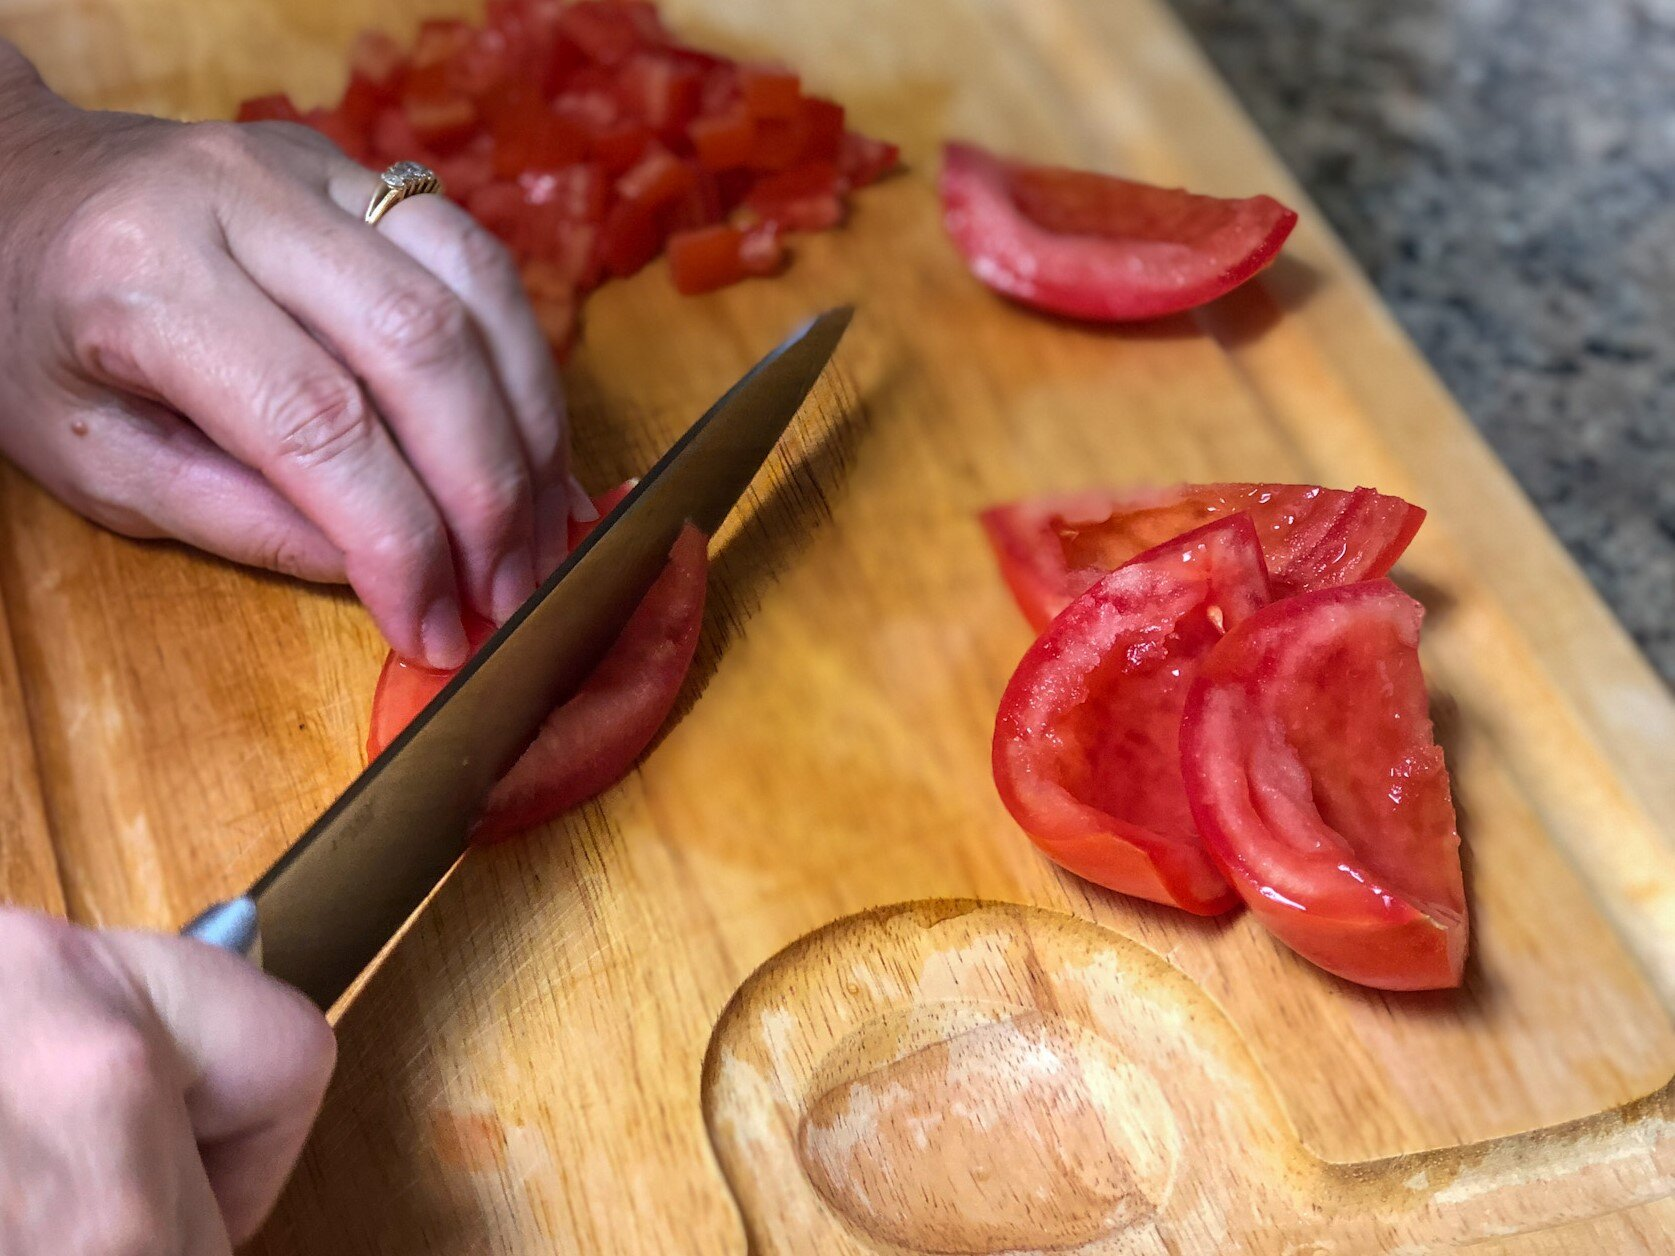 Chopping tomatoes to make Checca